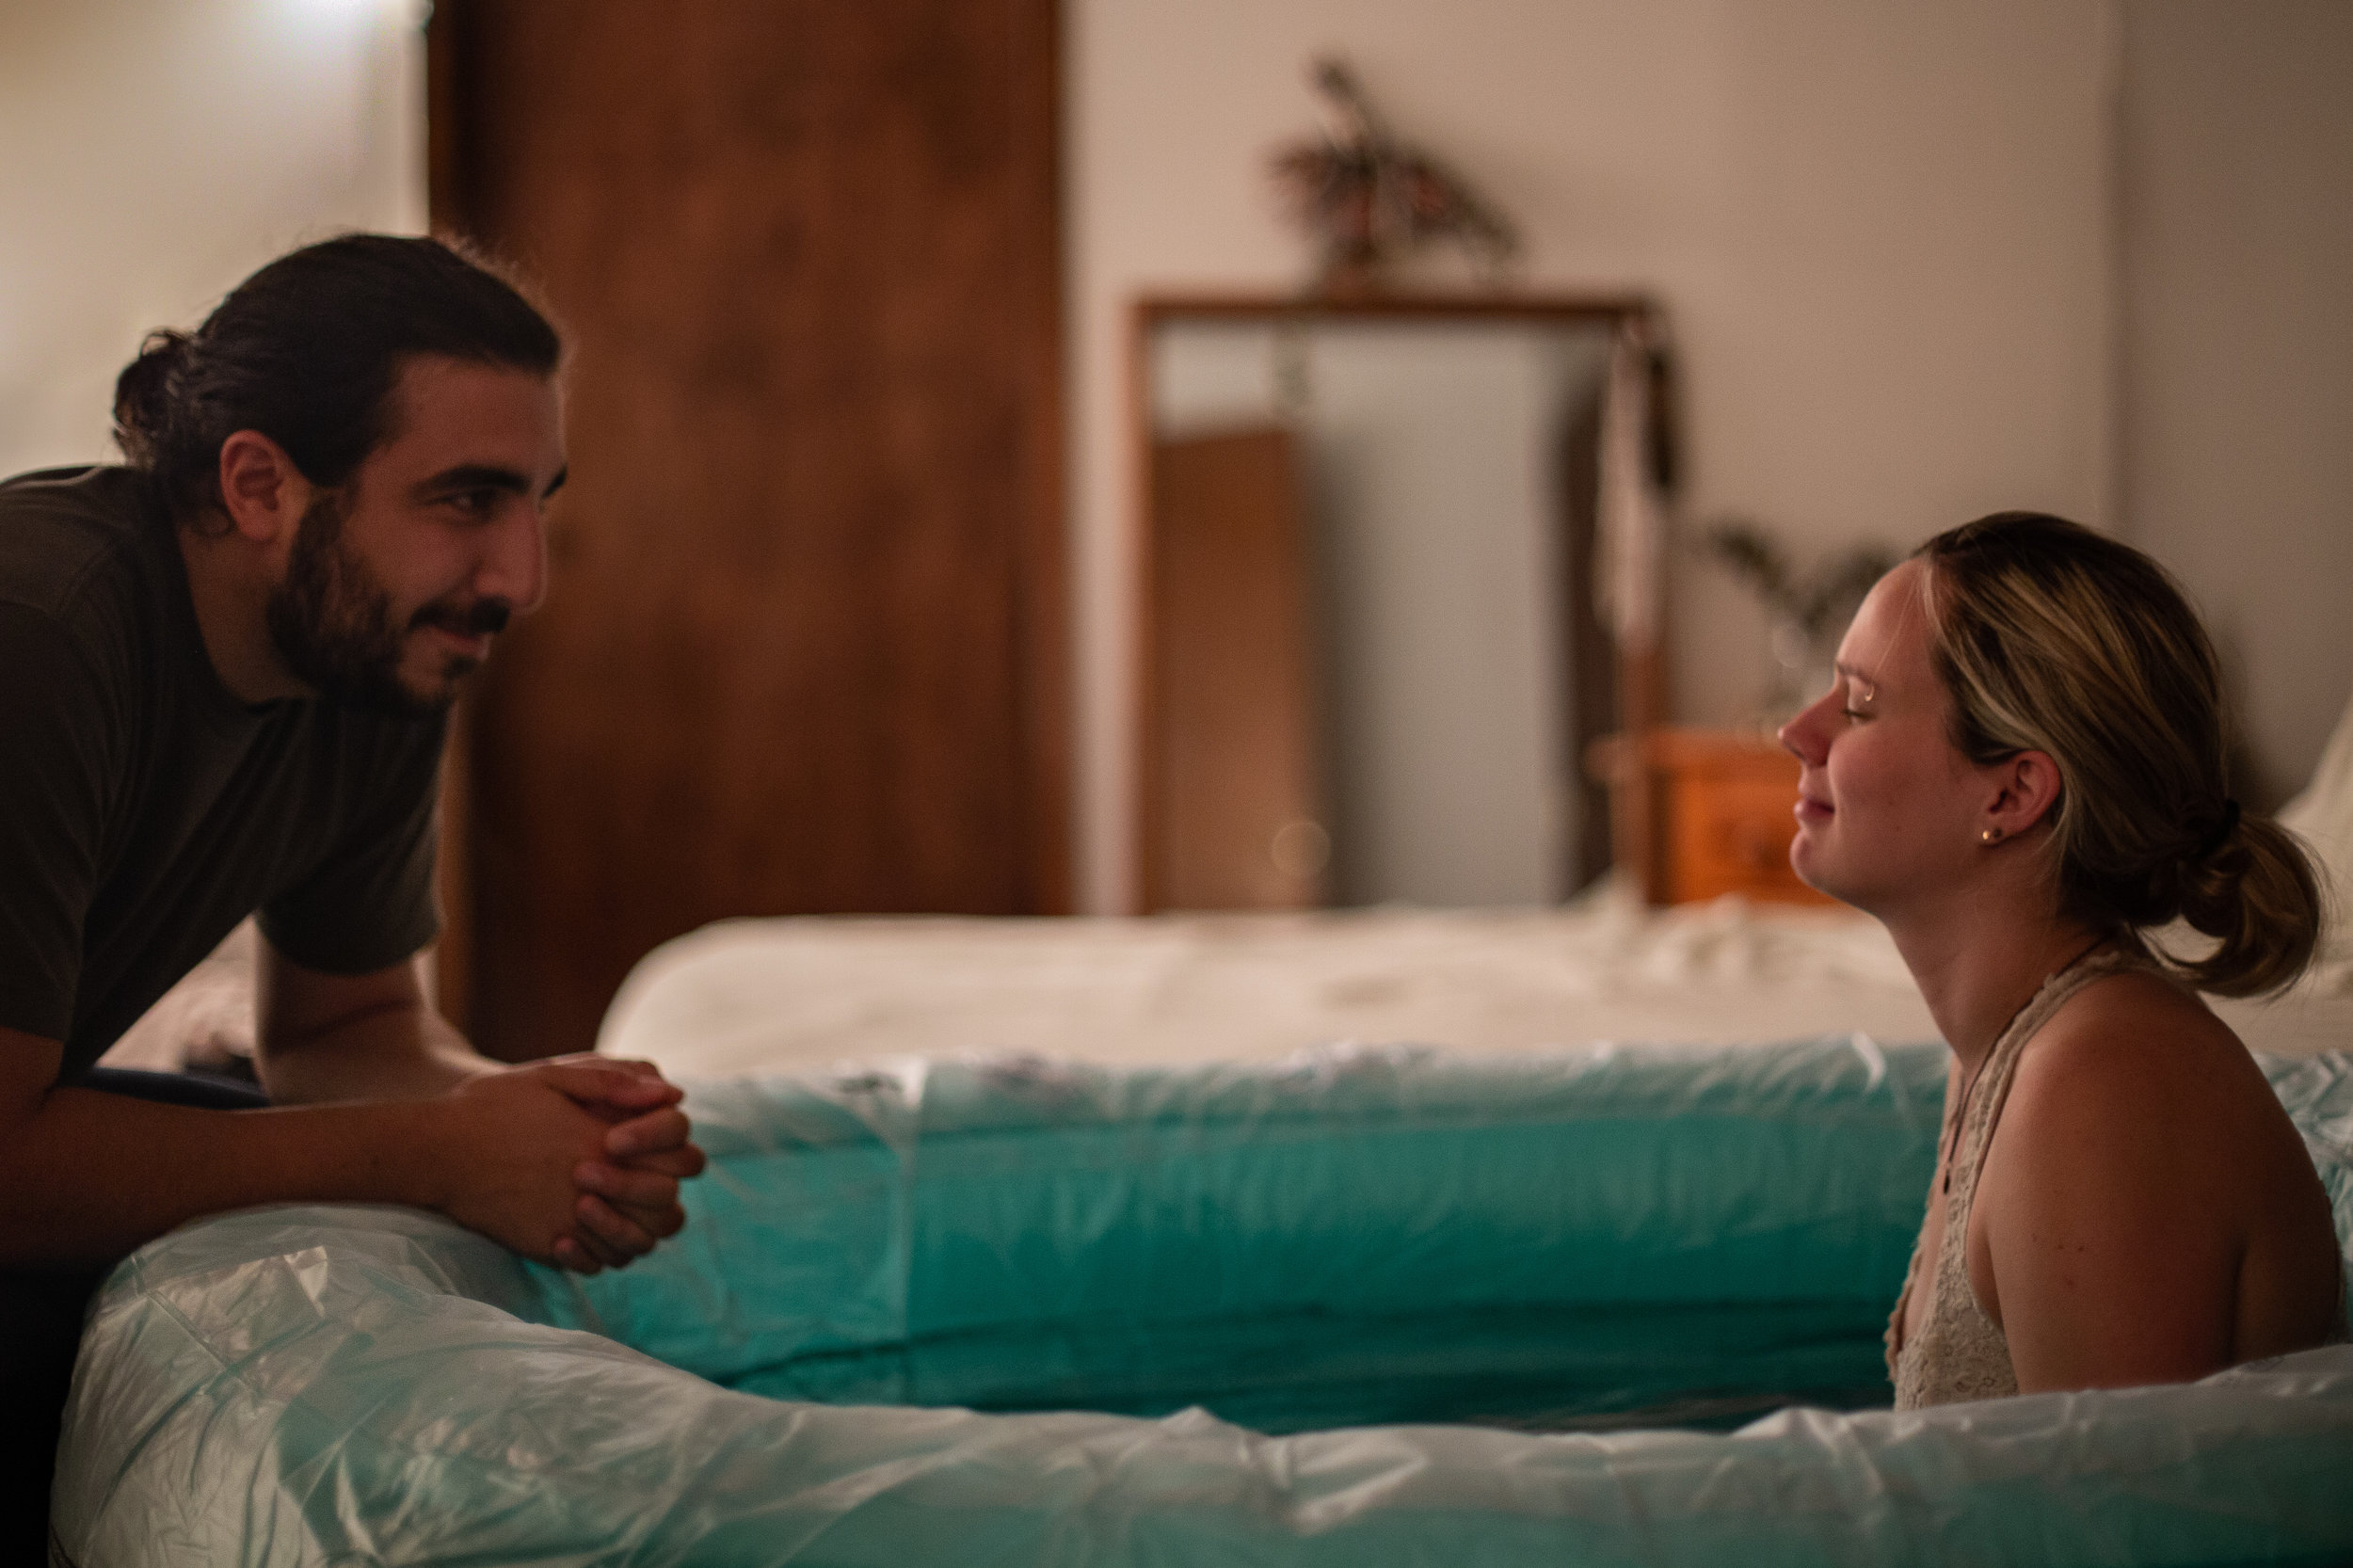 A woman in a birth tub smiles as her husband says something sweet to her.